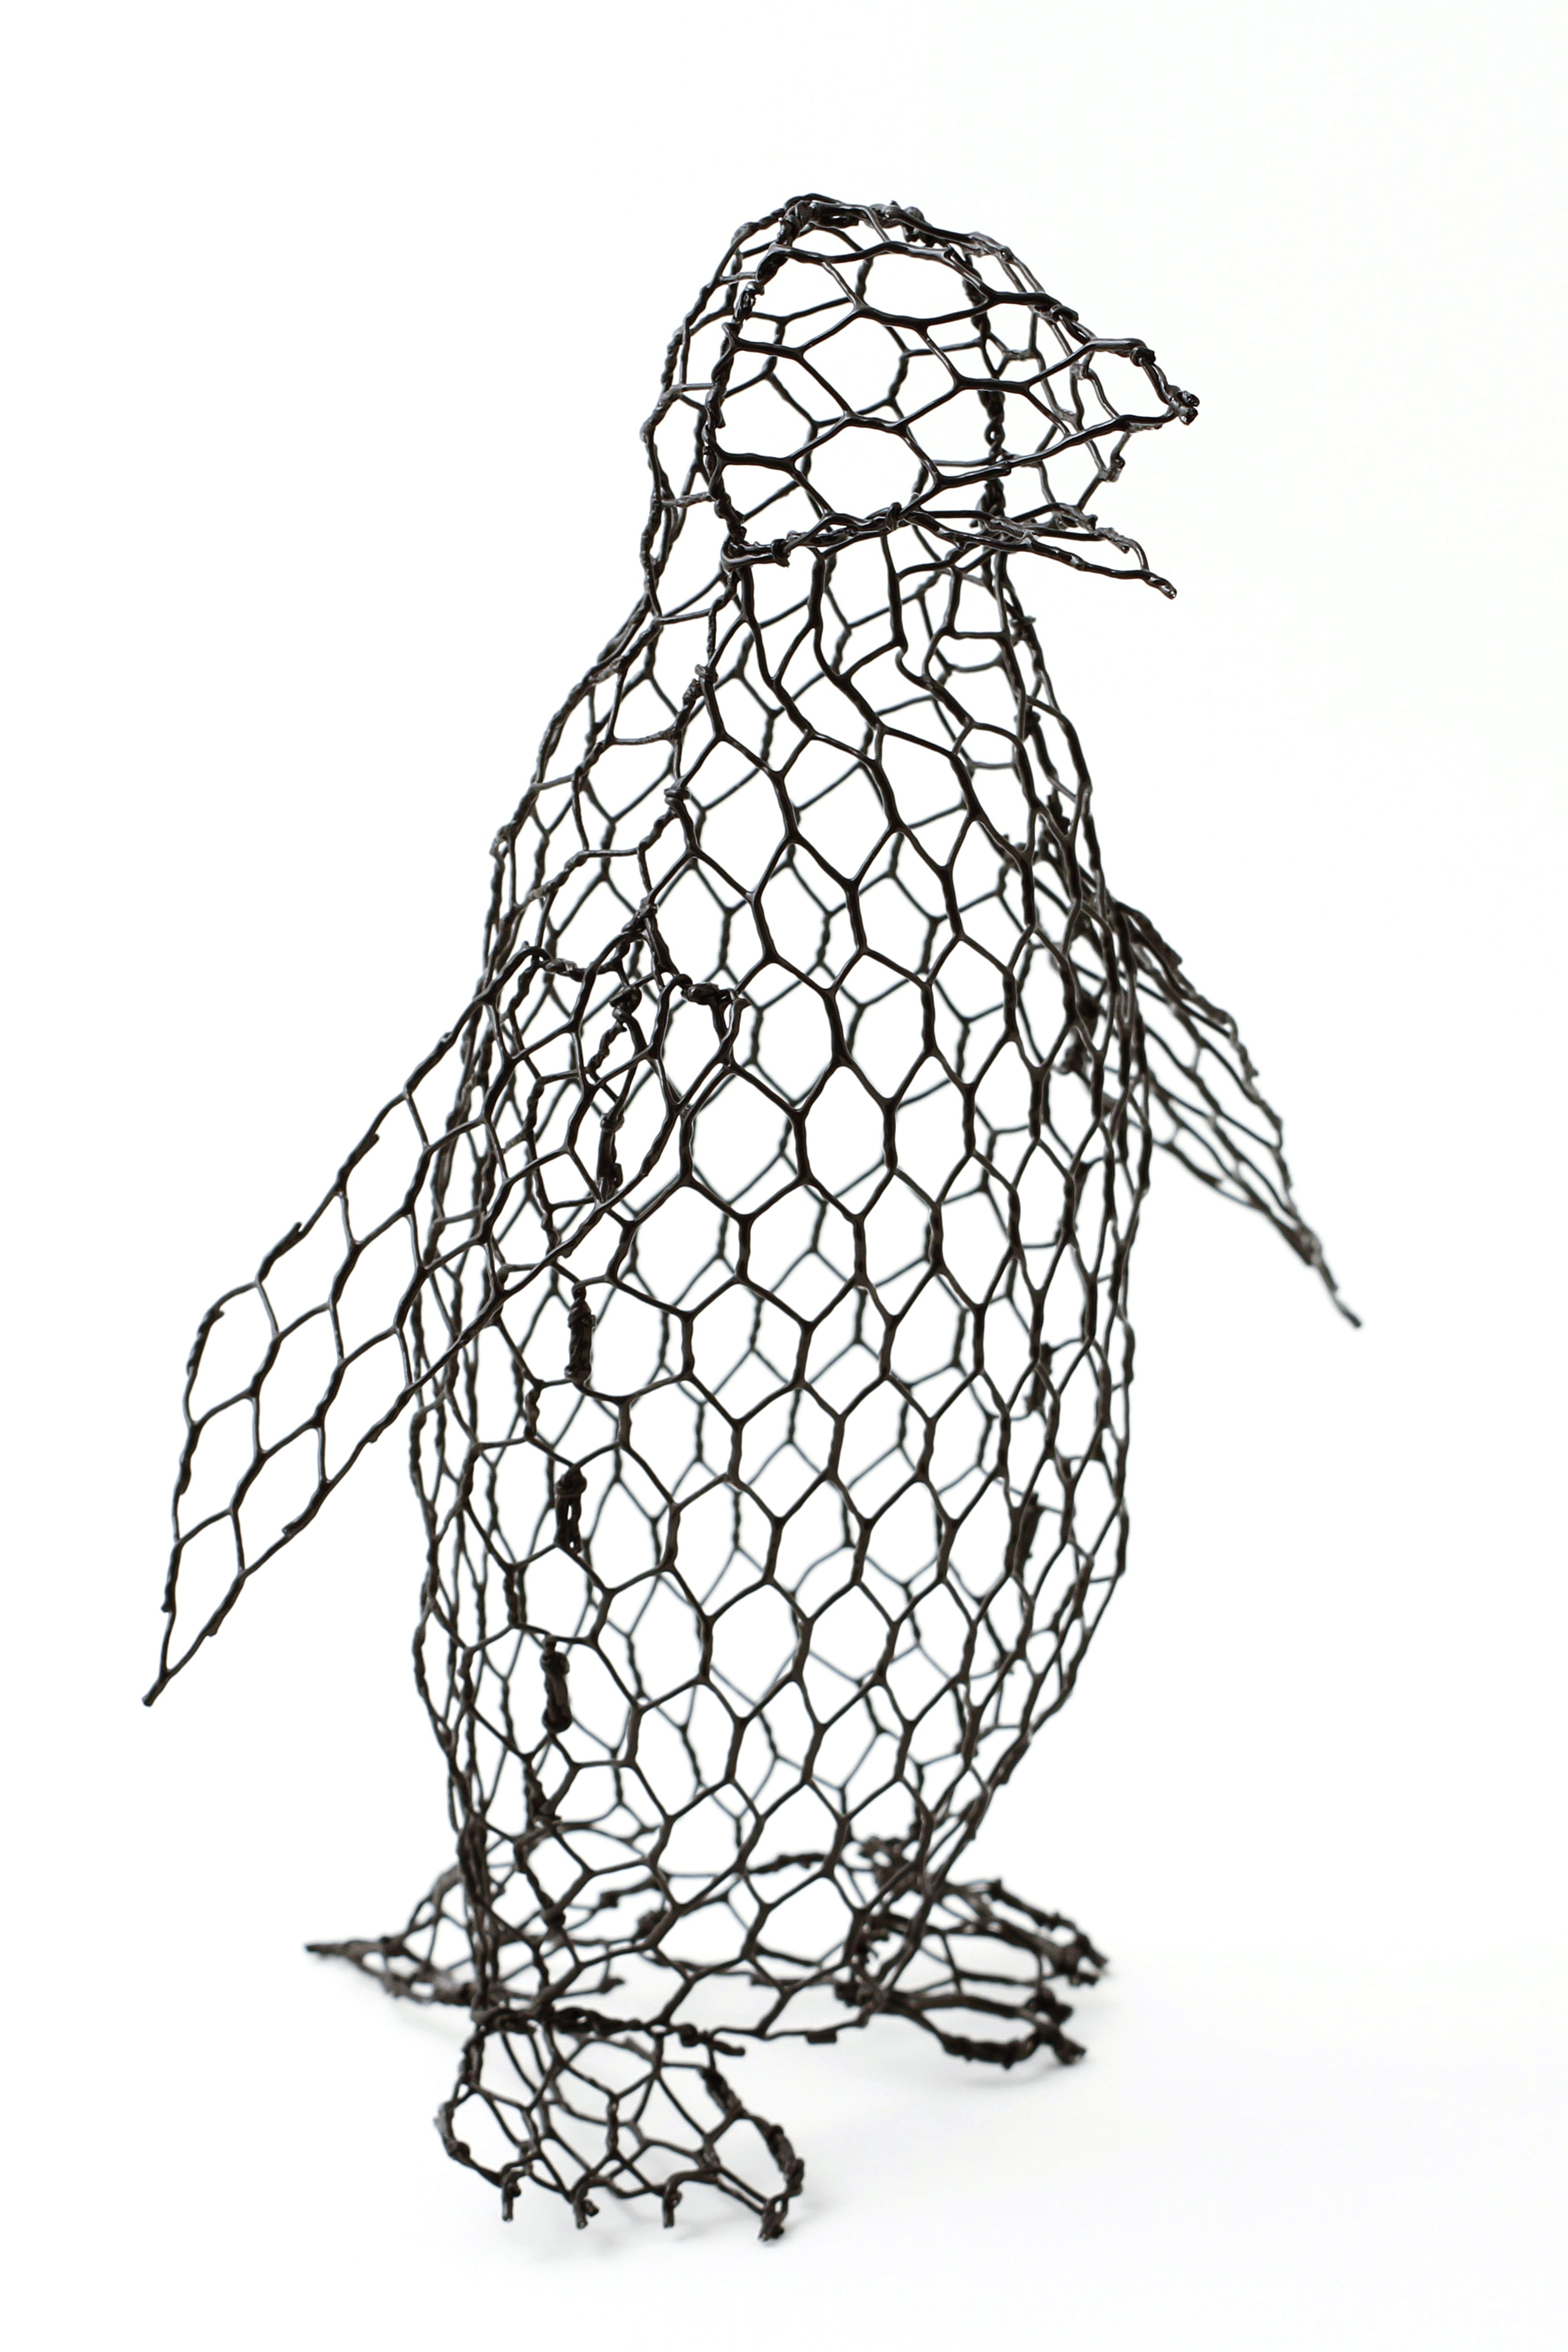 Chickenwired Large Penguin Template Included In The Penguin